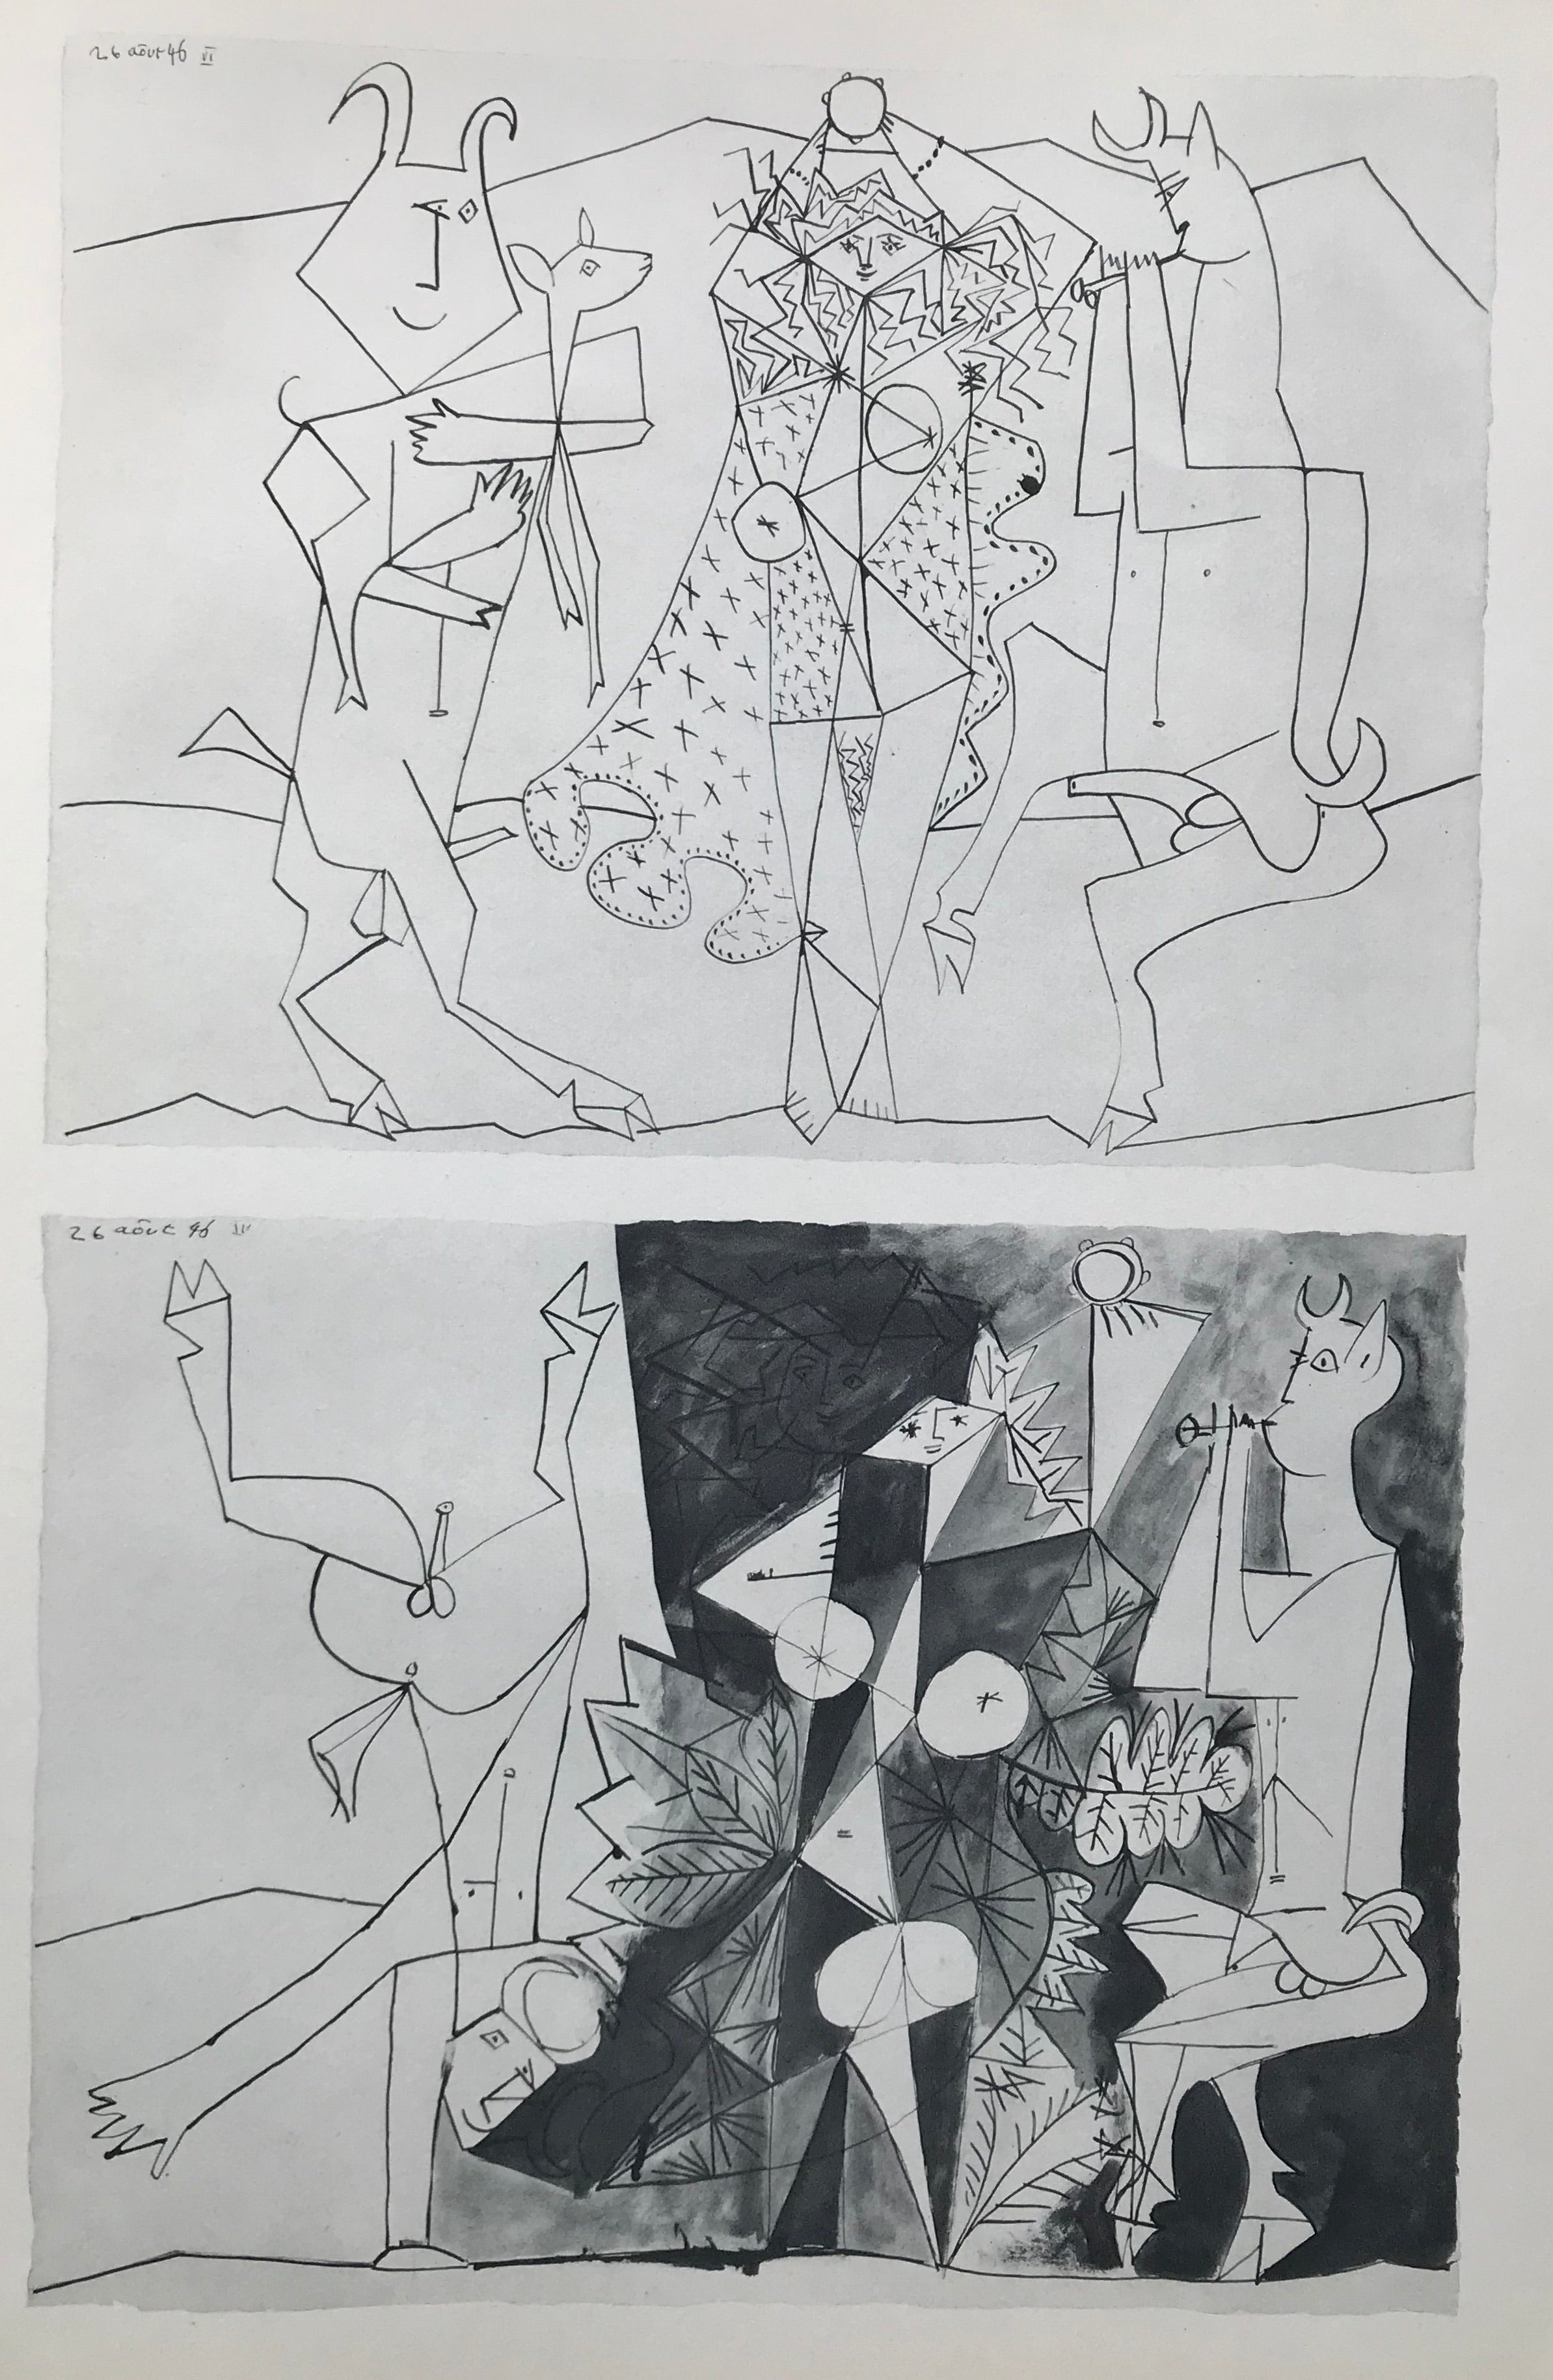 Mythical Figures by Pablo Picasso